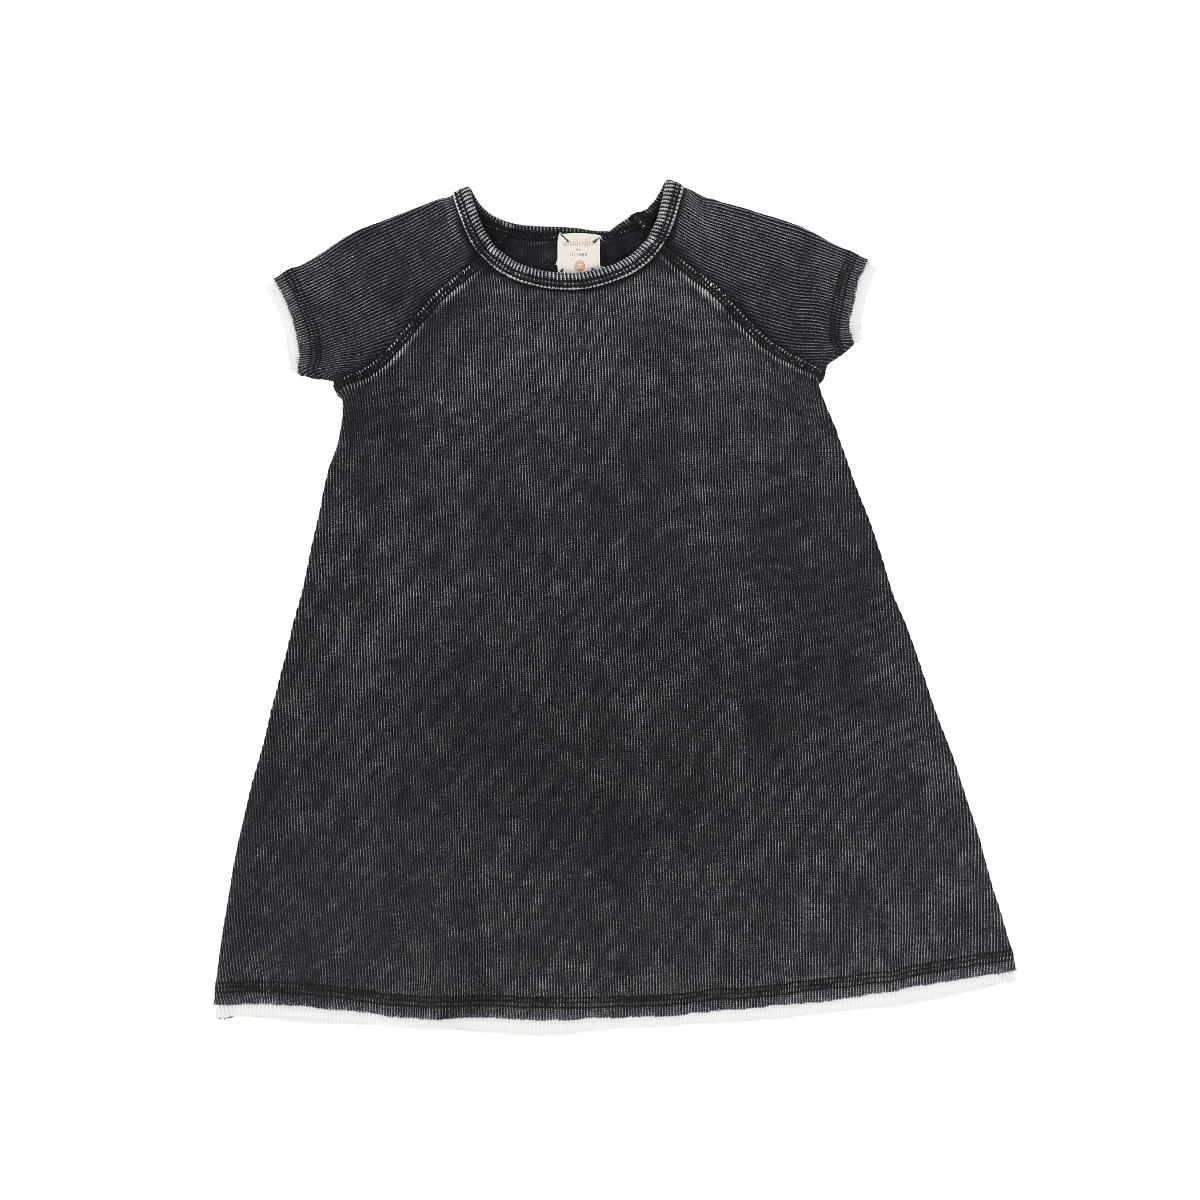 Analogie Black Wash Denim Short Sleeve Dress